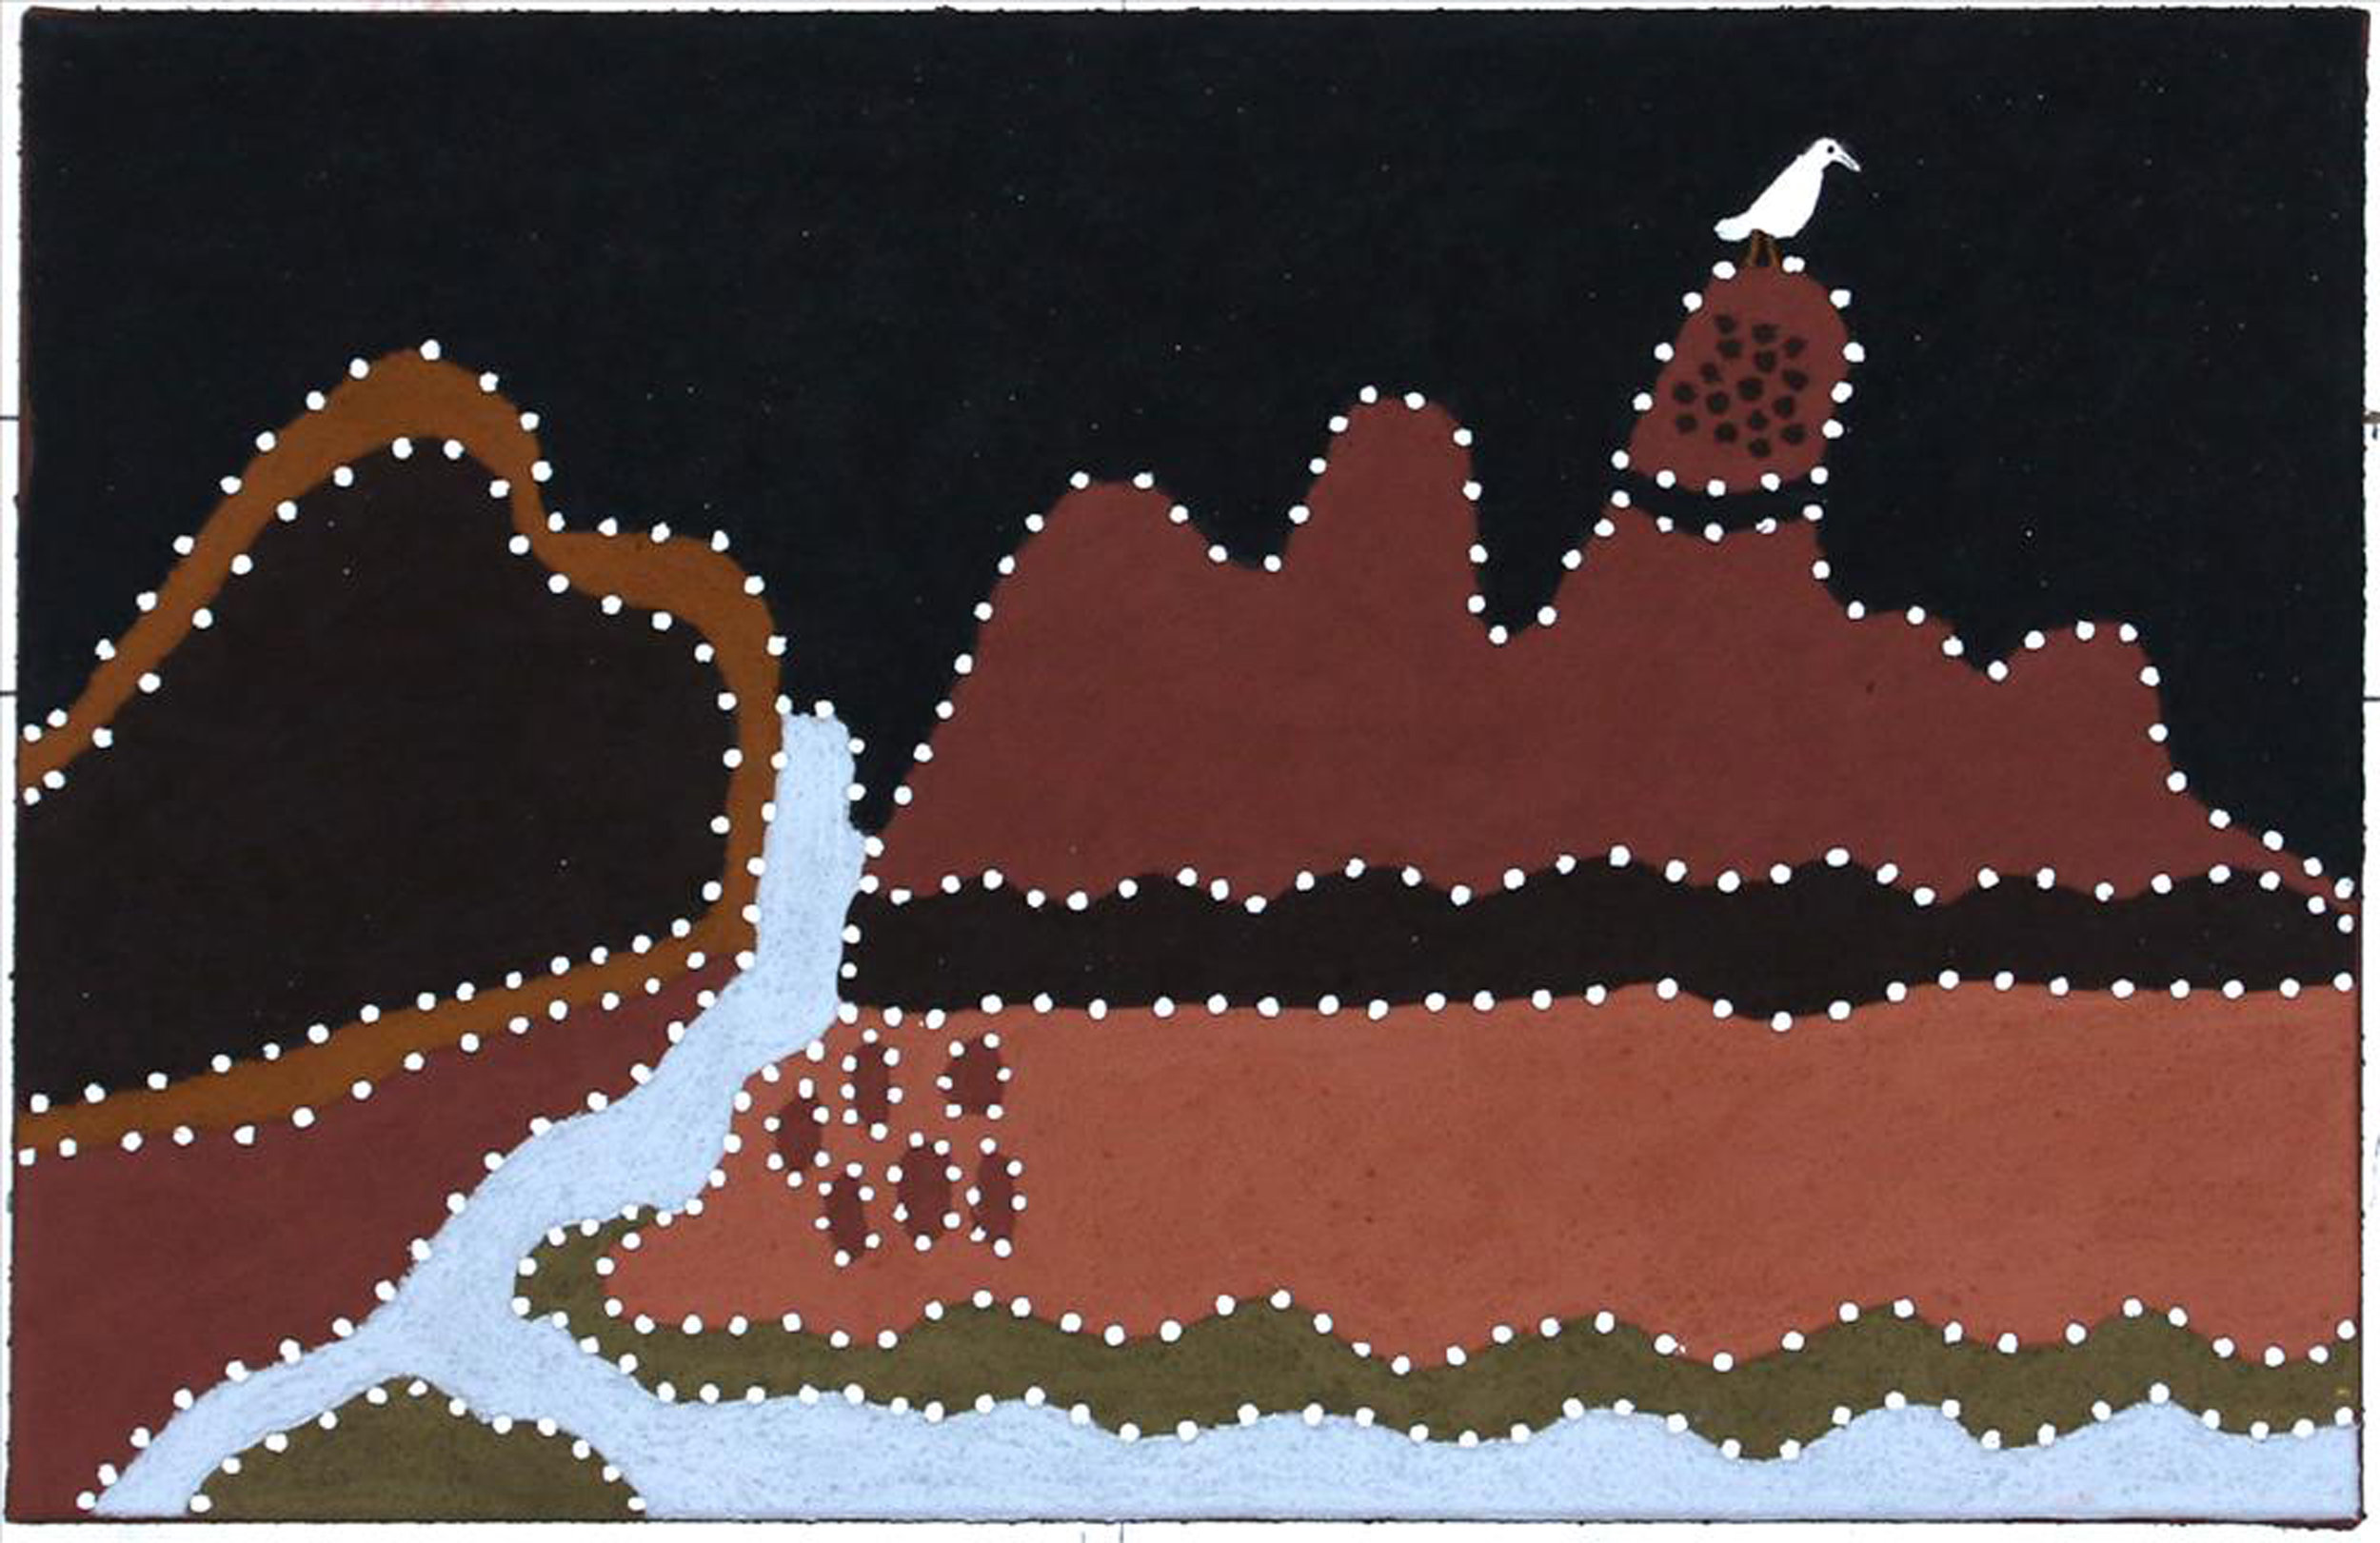 Shirley Purdie, Gyinnyan The Crane. 2018. Natural ochre and pigments on canvas. 45 x 70 cm. $1,900 SOLD